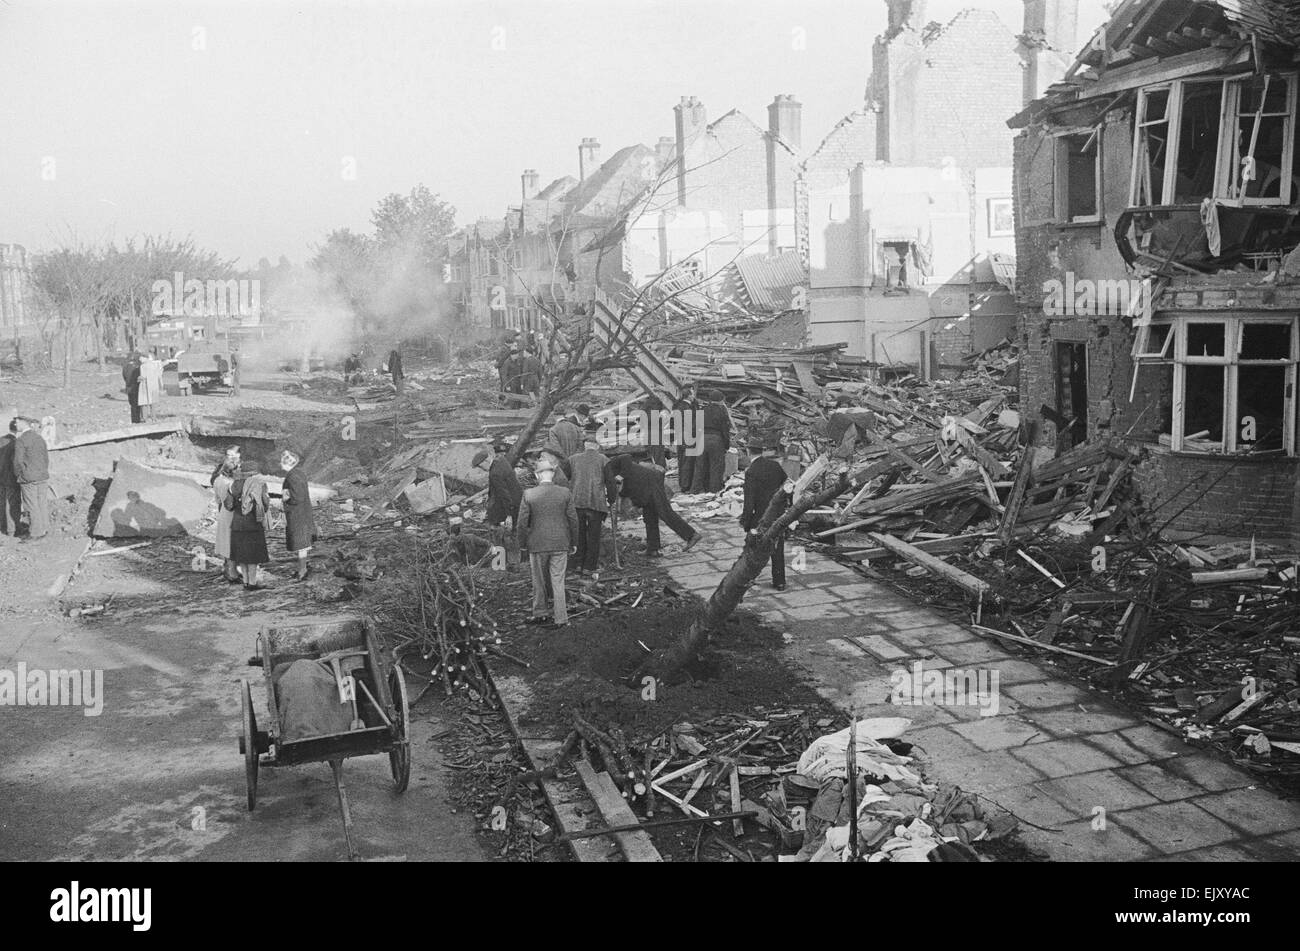 The aftermath of  V2 explosion. On the 8th September 1944 a huge explosion occured in Staveley Road, Chiswick, West London. There had been no siren, no warning and no V1 flying bombs had been sighted.  The explosion was caused by the first V2 ballistic missile fired in anger. Hitler's much vaunted A4 Rocket more commonly known as the V2 weighed 13 tons and had arrived via the stratosphere at 3,000 miles an hour faster than the speed of sound. This meant that the first anybody knew about the attack was the explosion followed by the roar of the rocket motors catching up